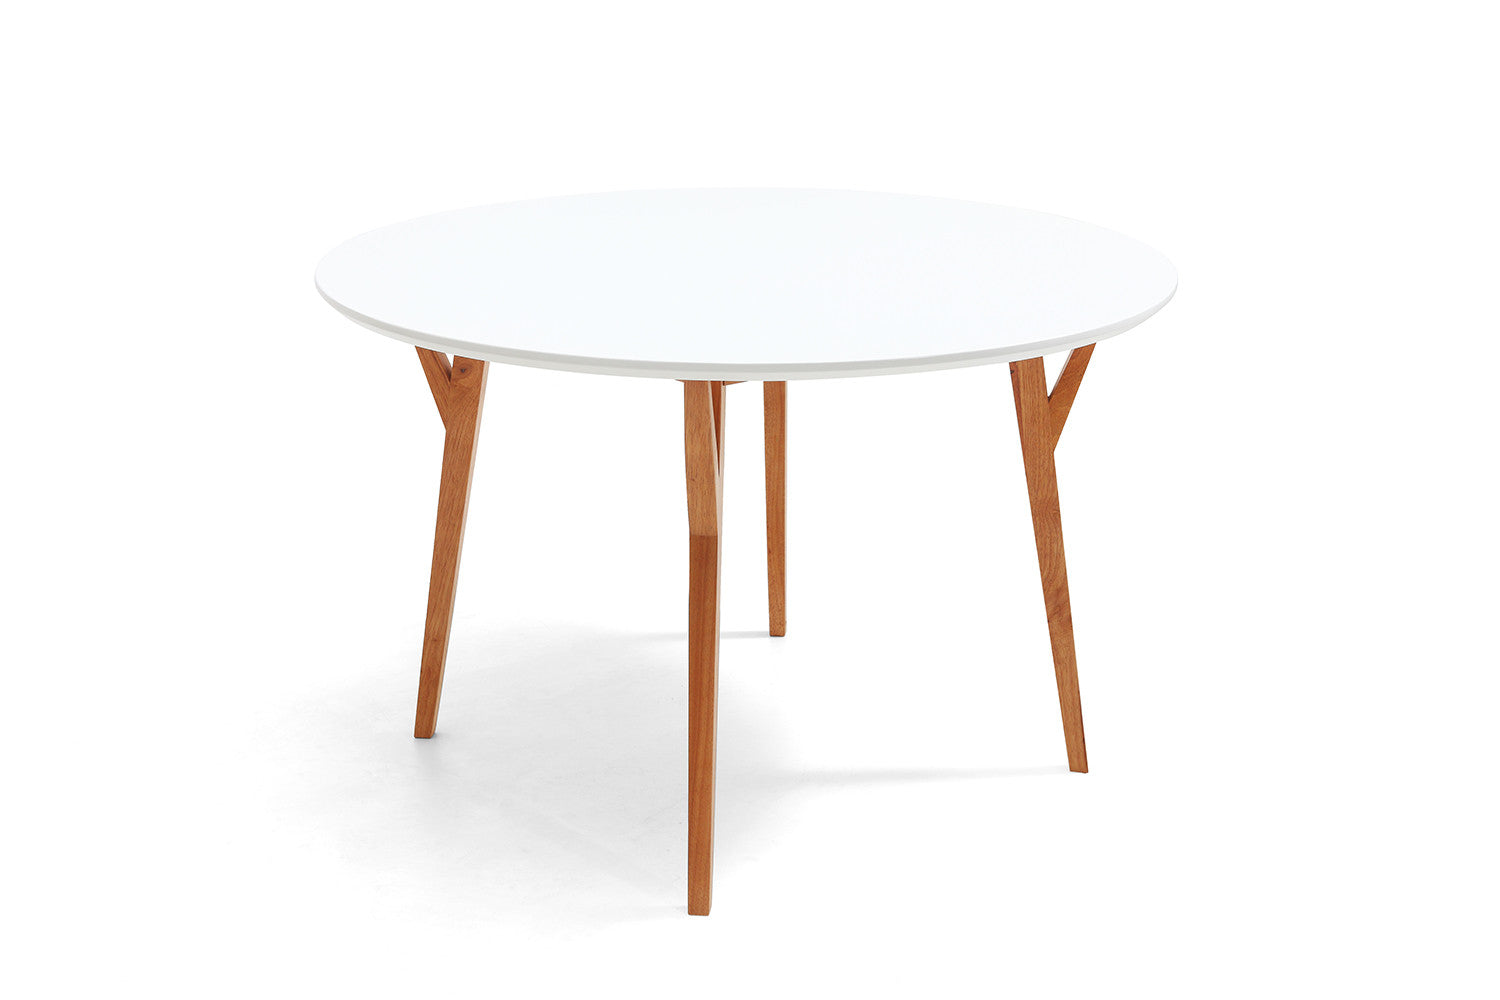 Table de salle manger ronde design scandinave moesa for Table a manger ronde design